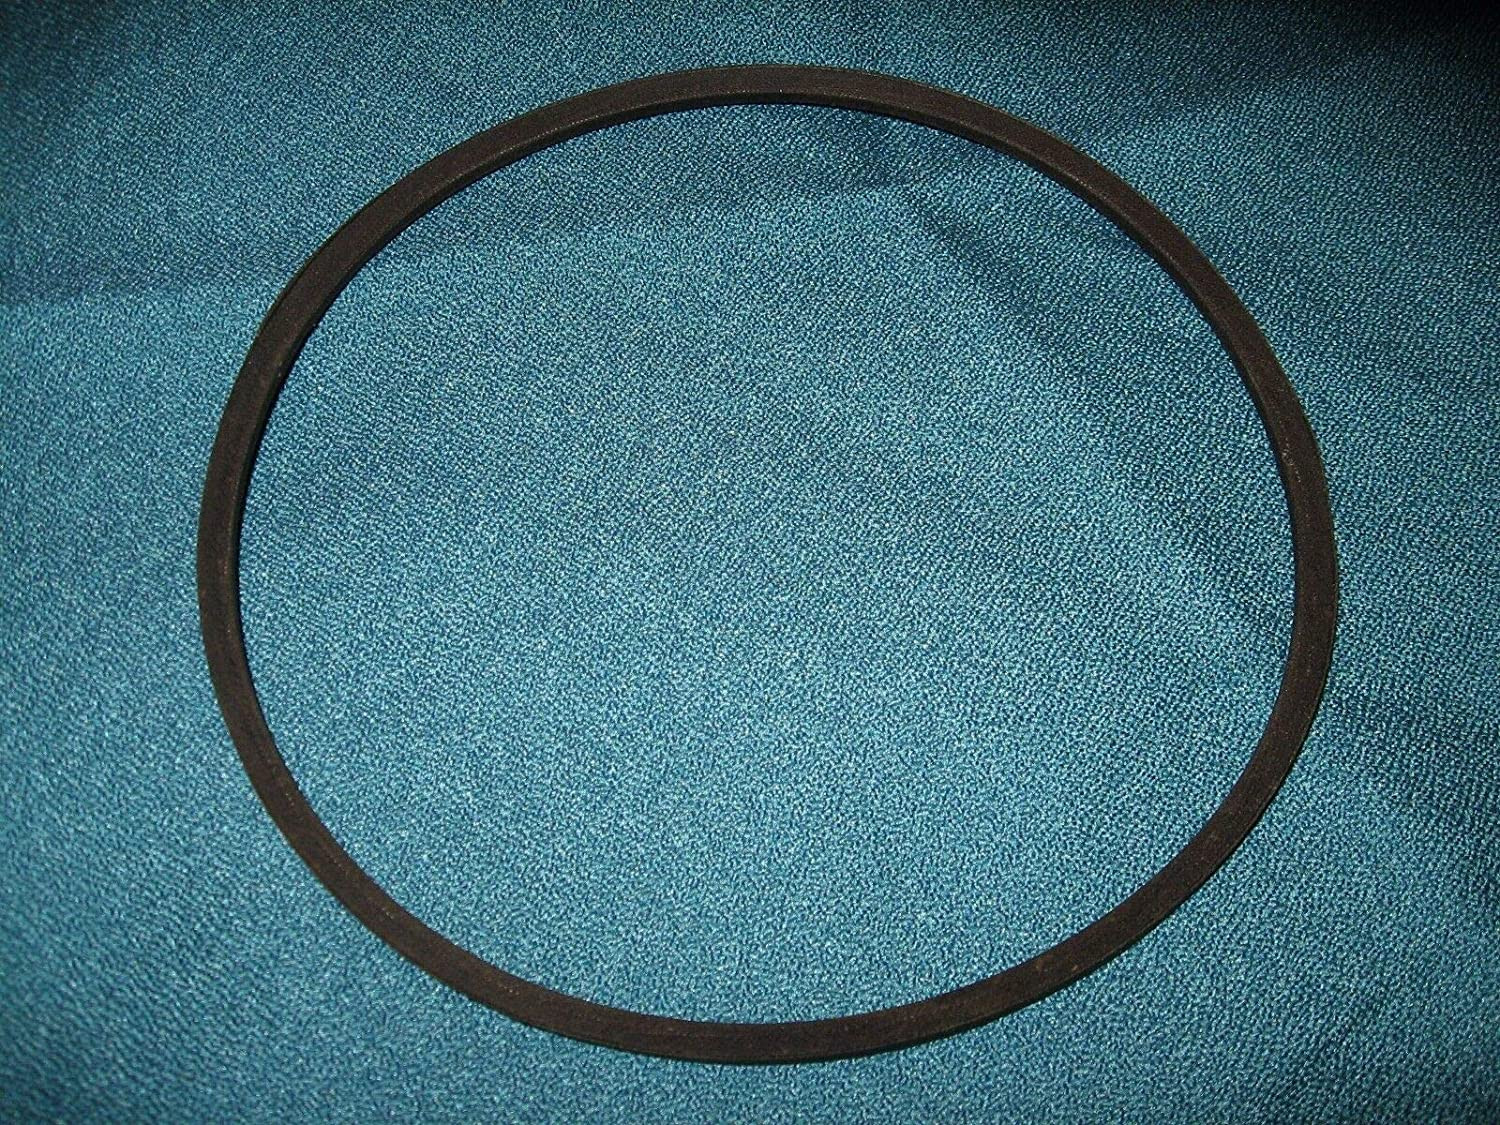 Brand New Replacement DRIVE BELT FOR HARBOR FREIGHT DRILL PRESS MODEL 9083